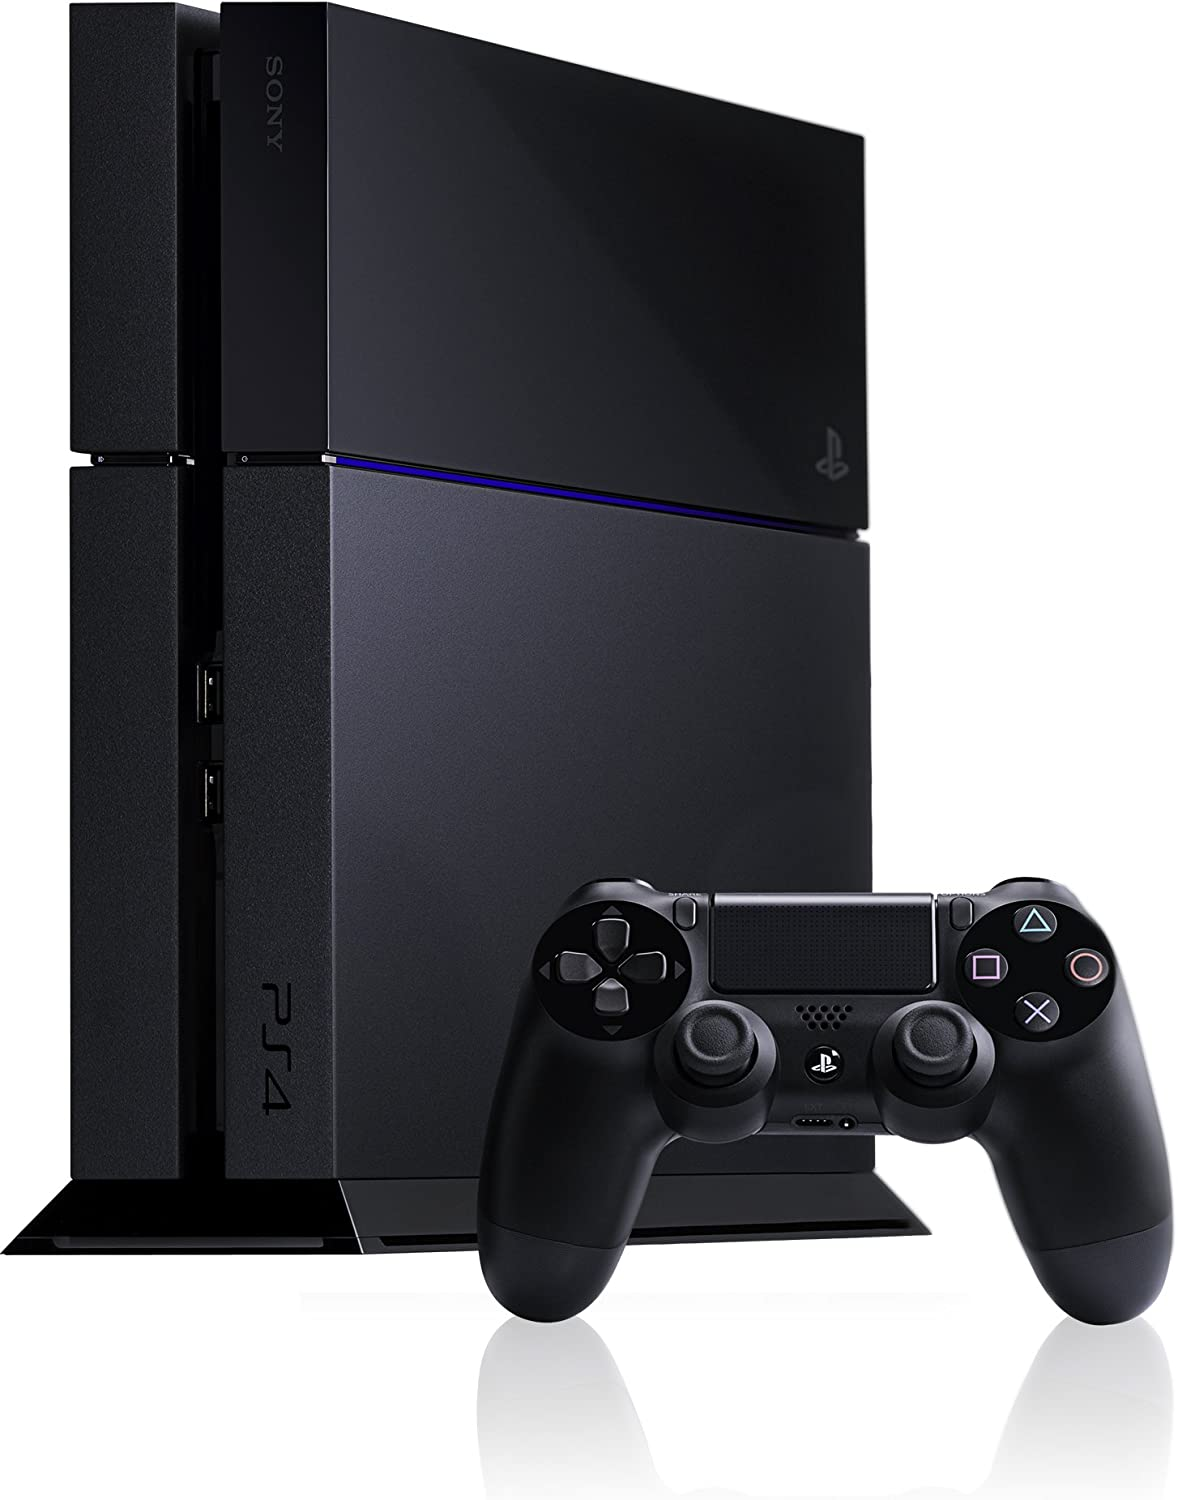 Buy Playstaion 4,PS4, Sony Playstion 4, Shop for PS4, Buy a pS4, PS4 Sale,